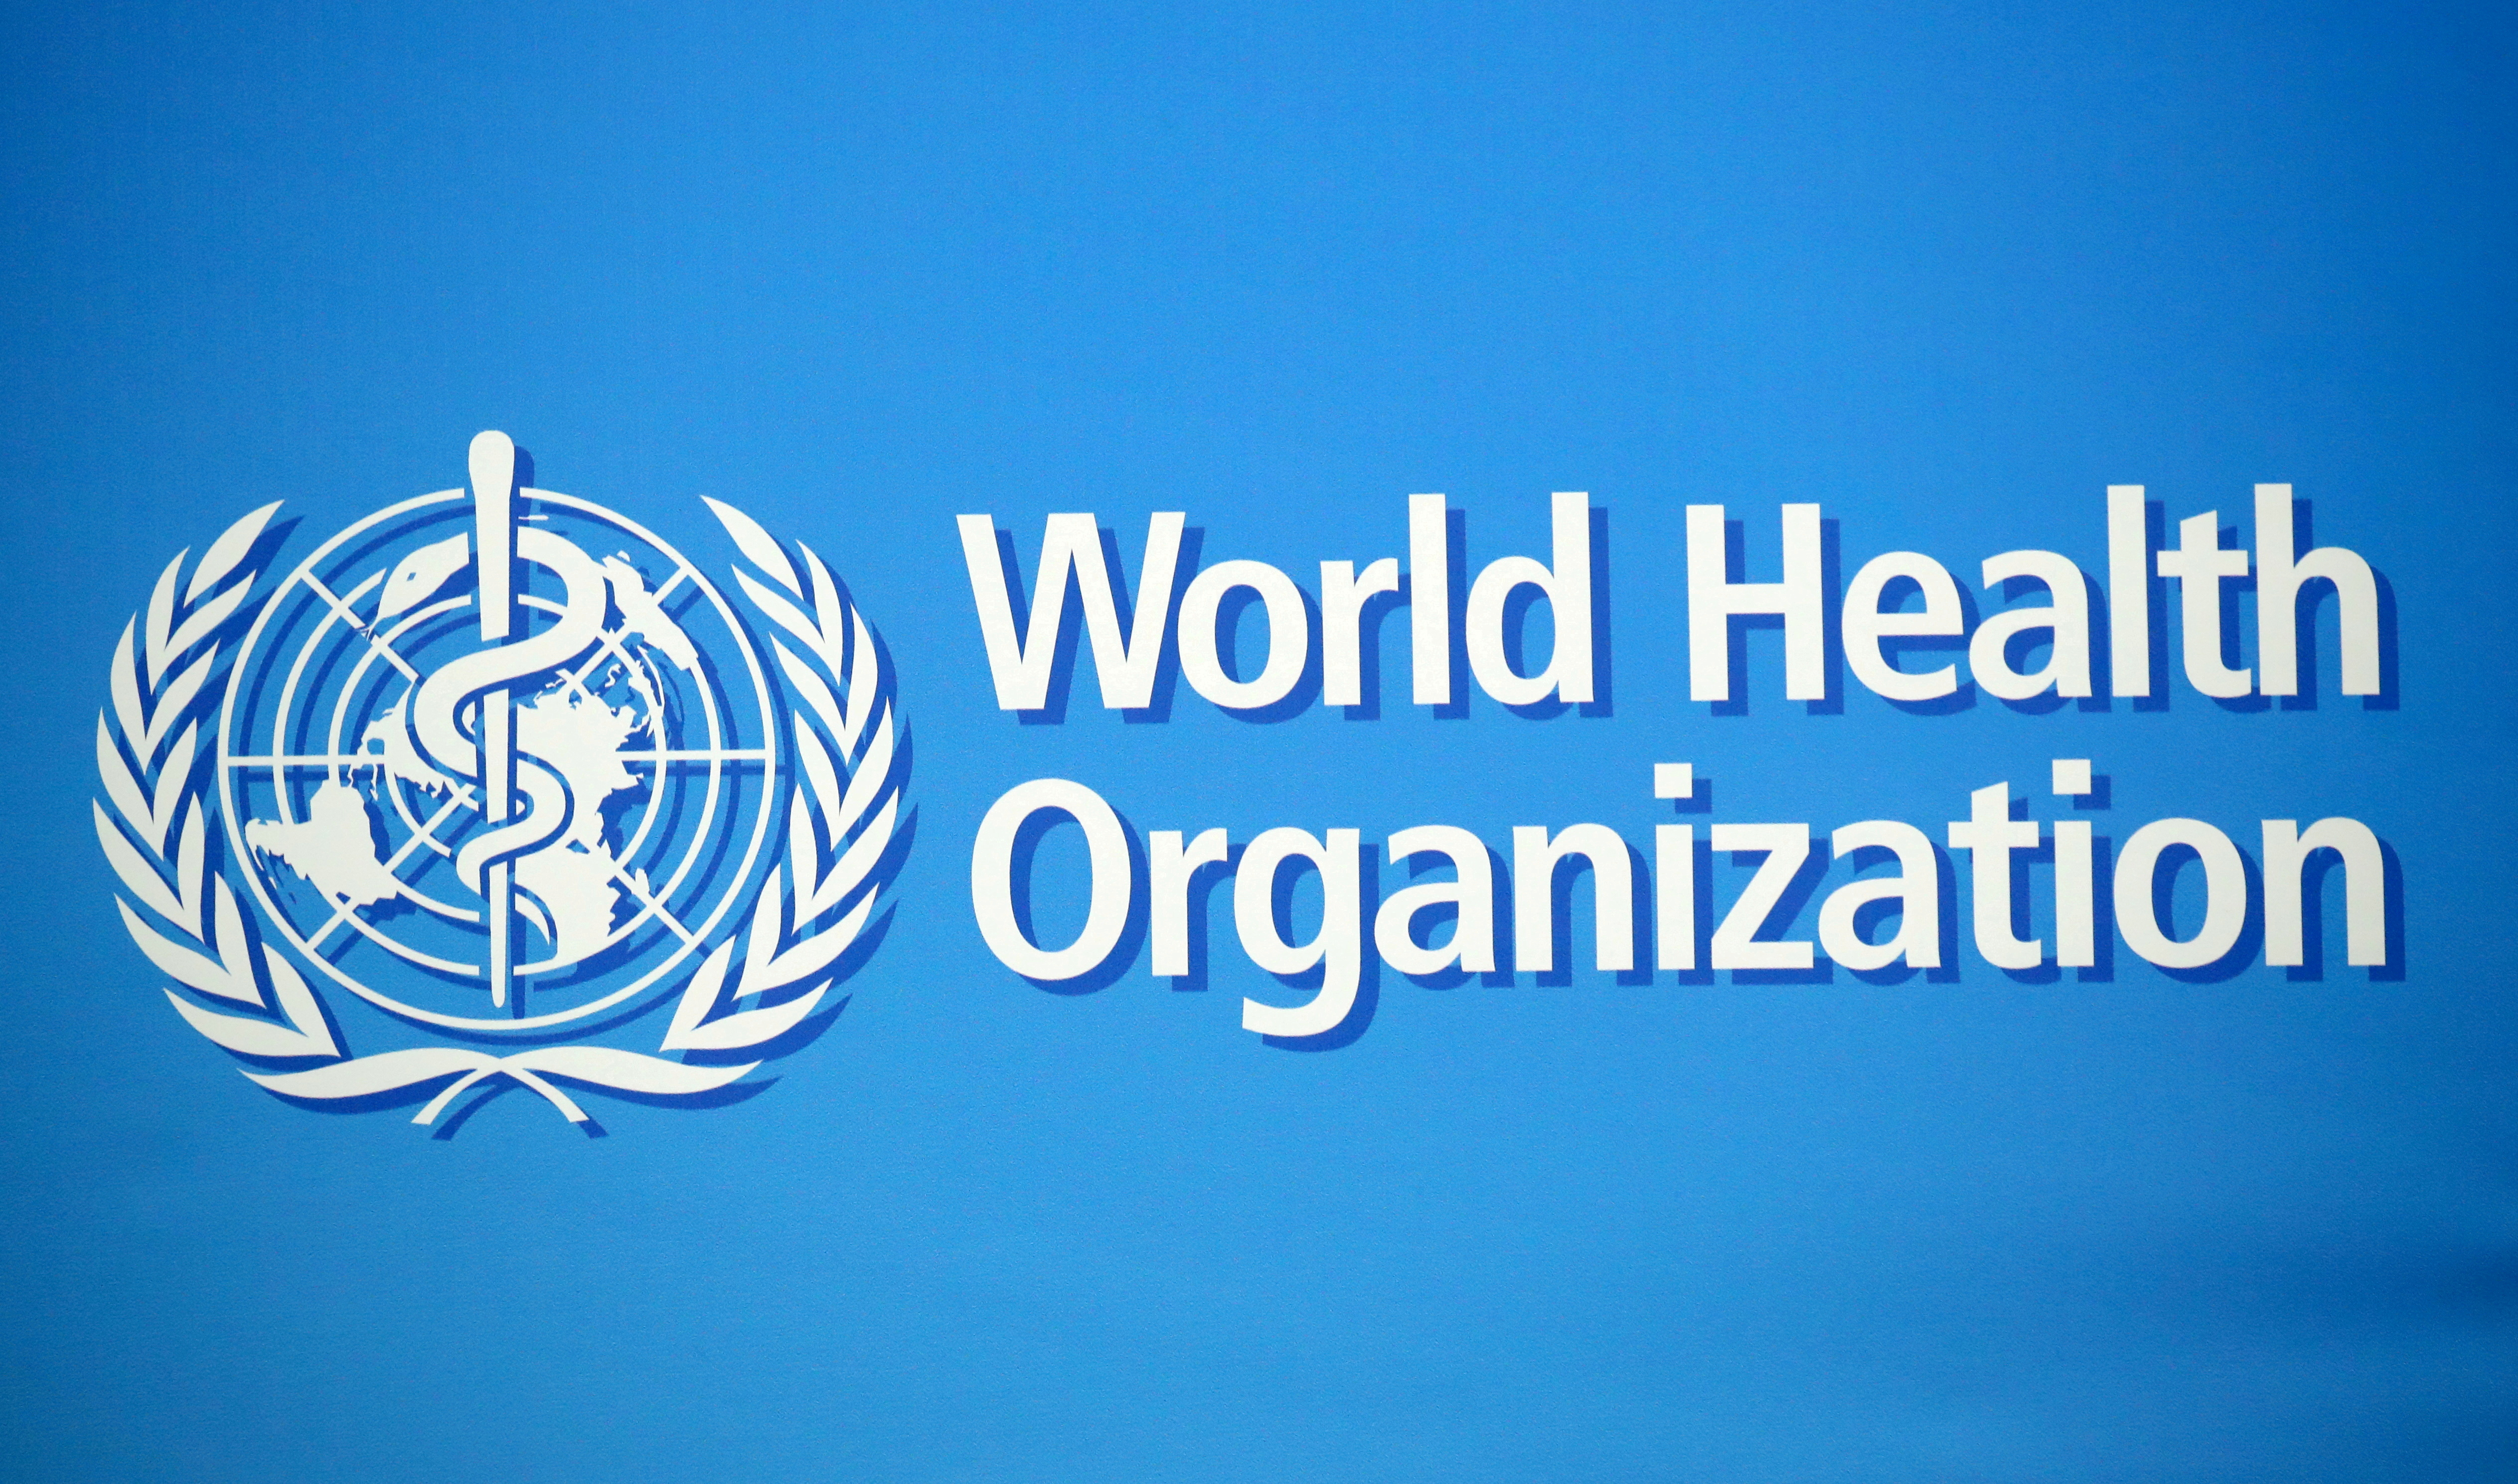 A logo is pictured at the World Health Organization (WHO) building in Geneva, Switzerland, February 2, 2020.  REUTERS/Denis Balibouse